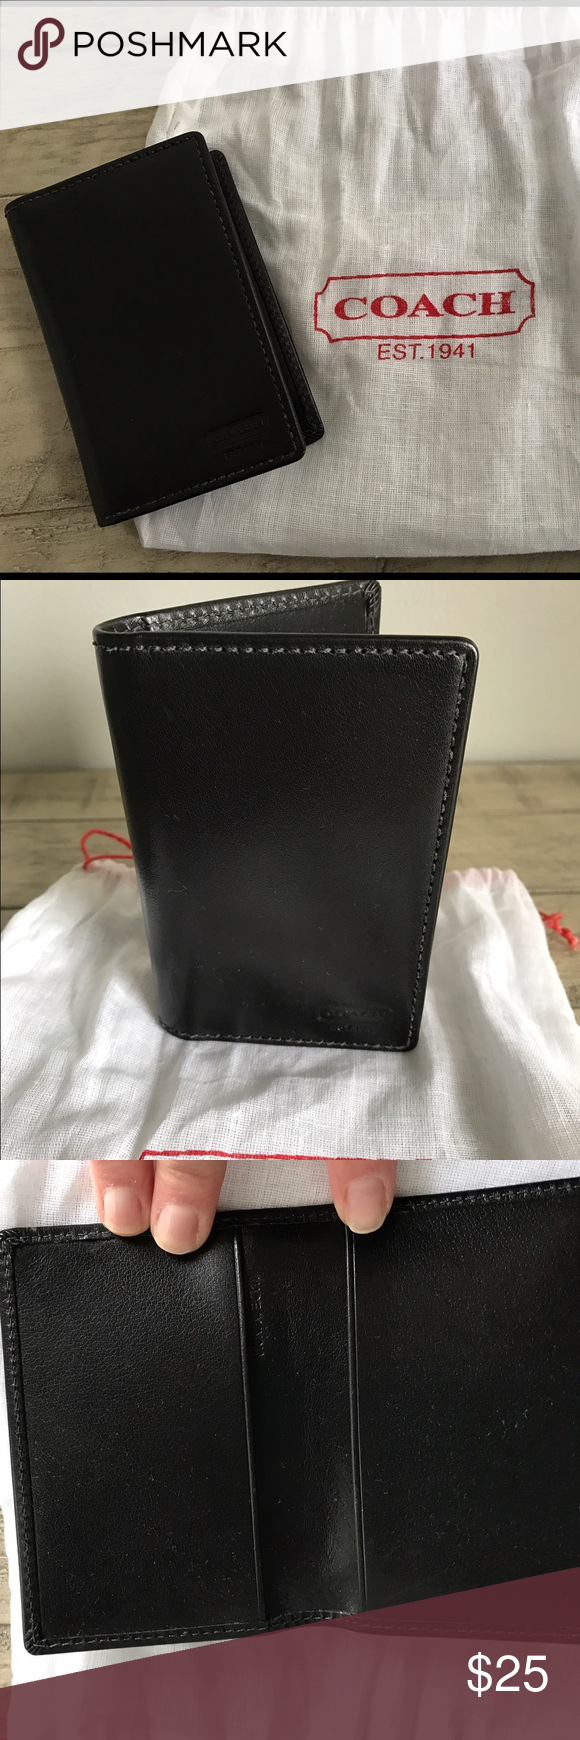 BN**Coach Blk Business Card/Credit Card Holder | Business card ...